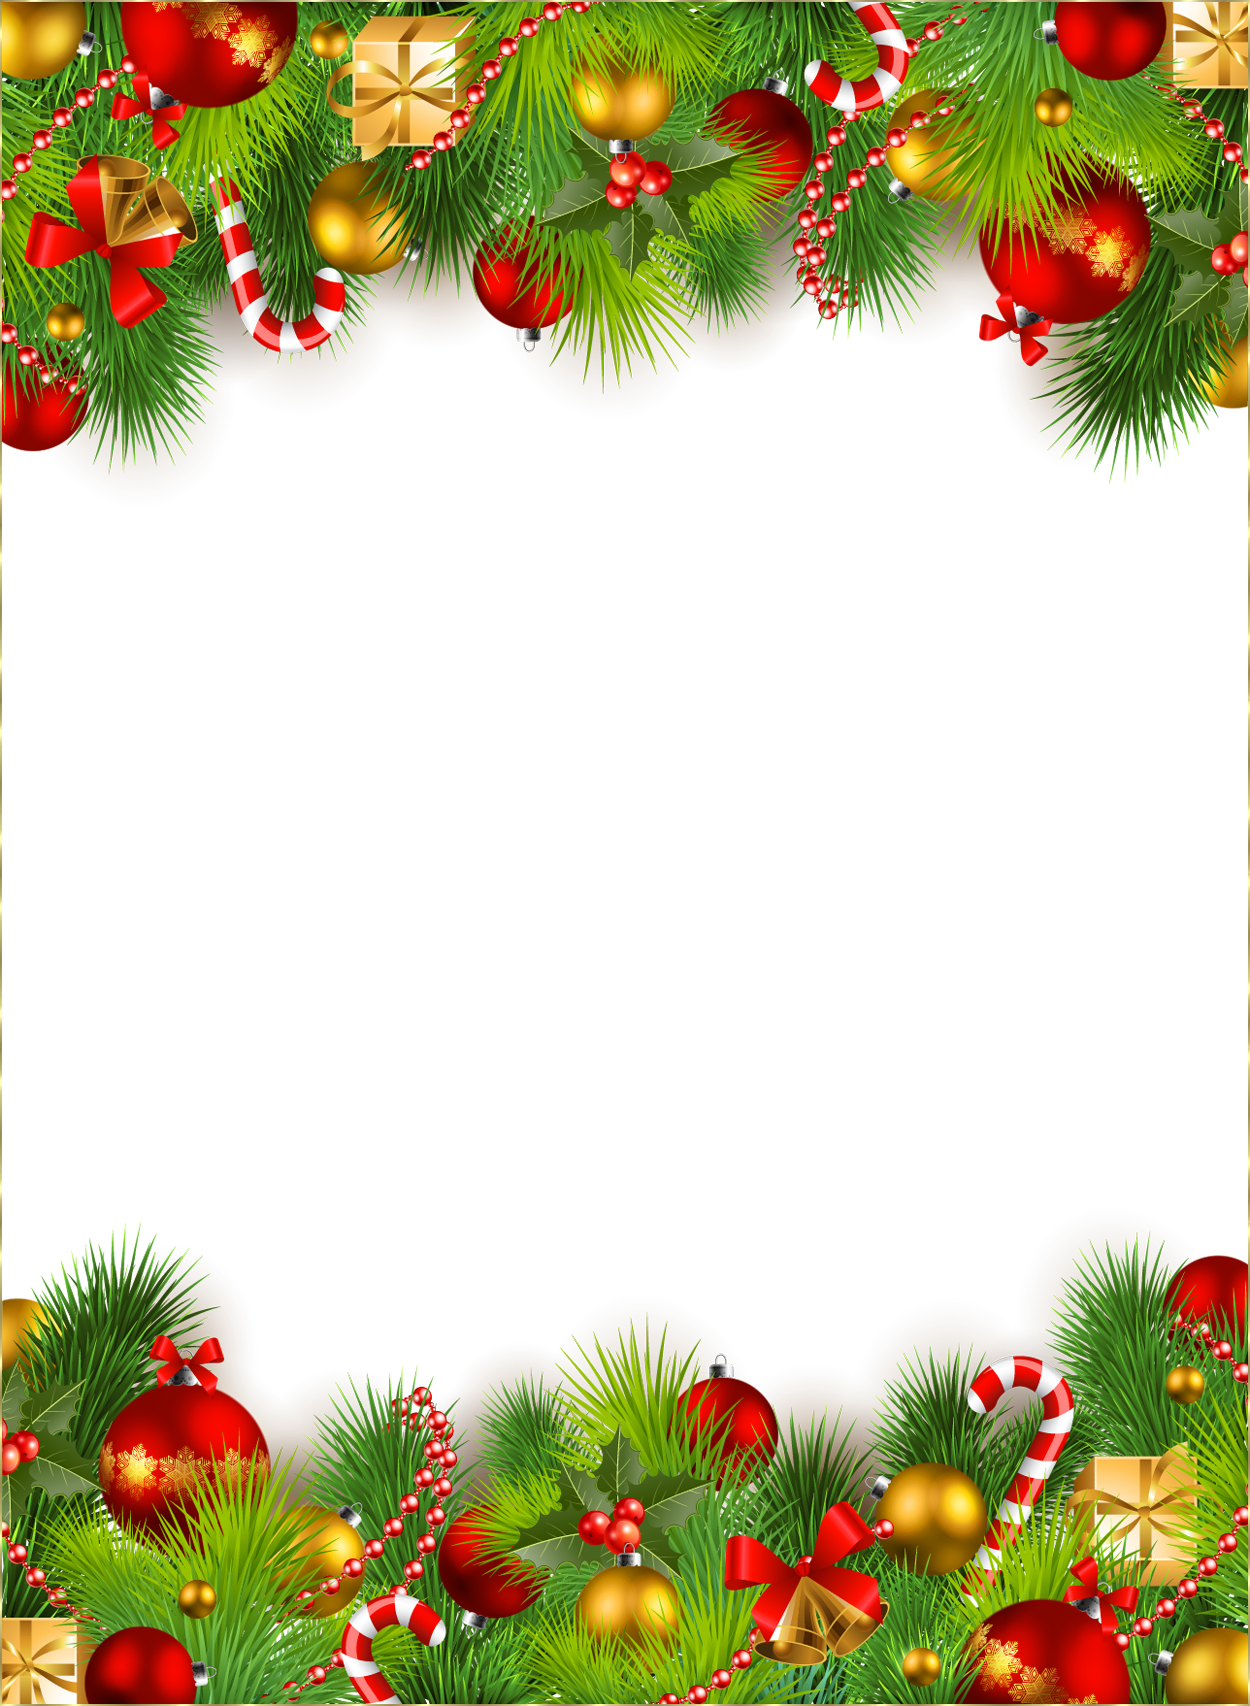 Png image without background. Christmas borders .png picture library download